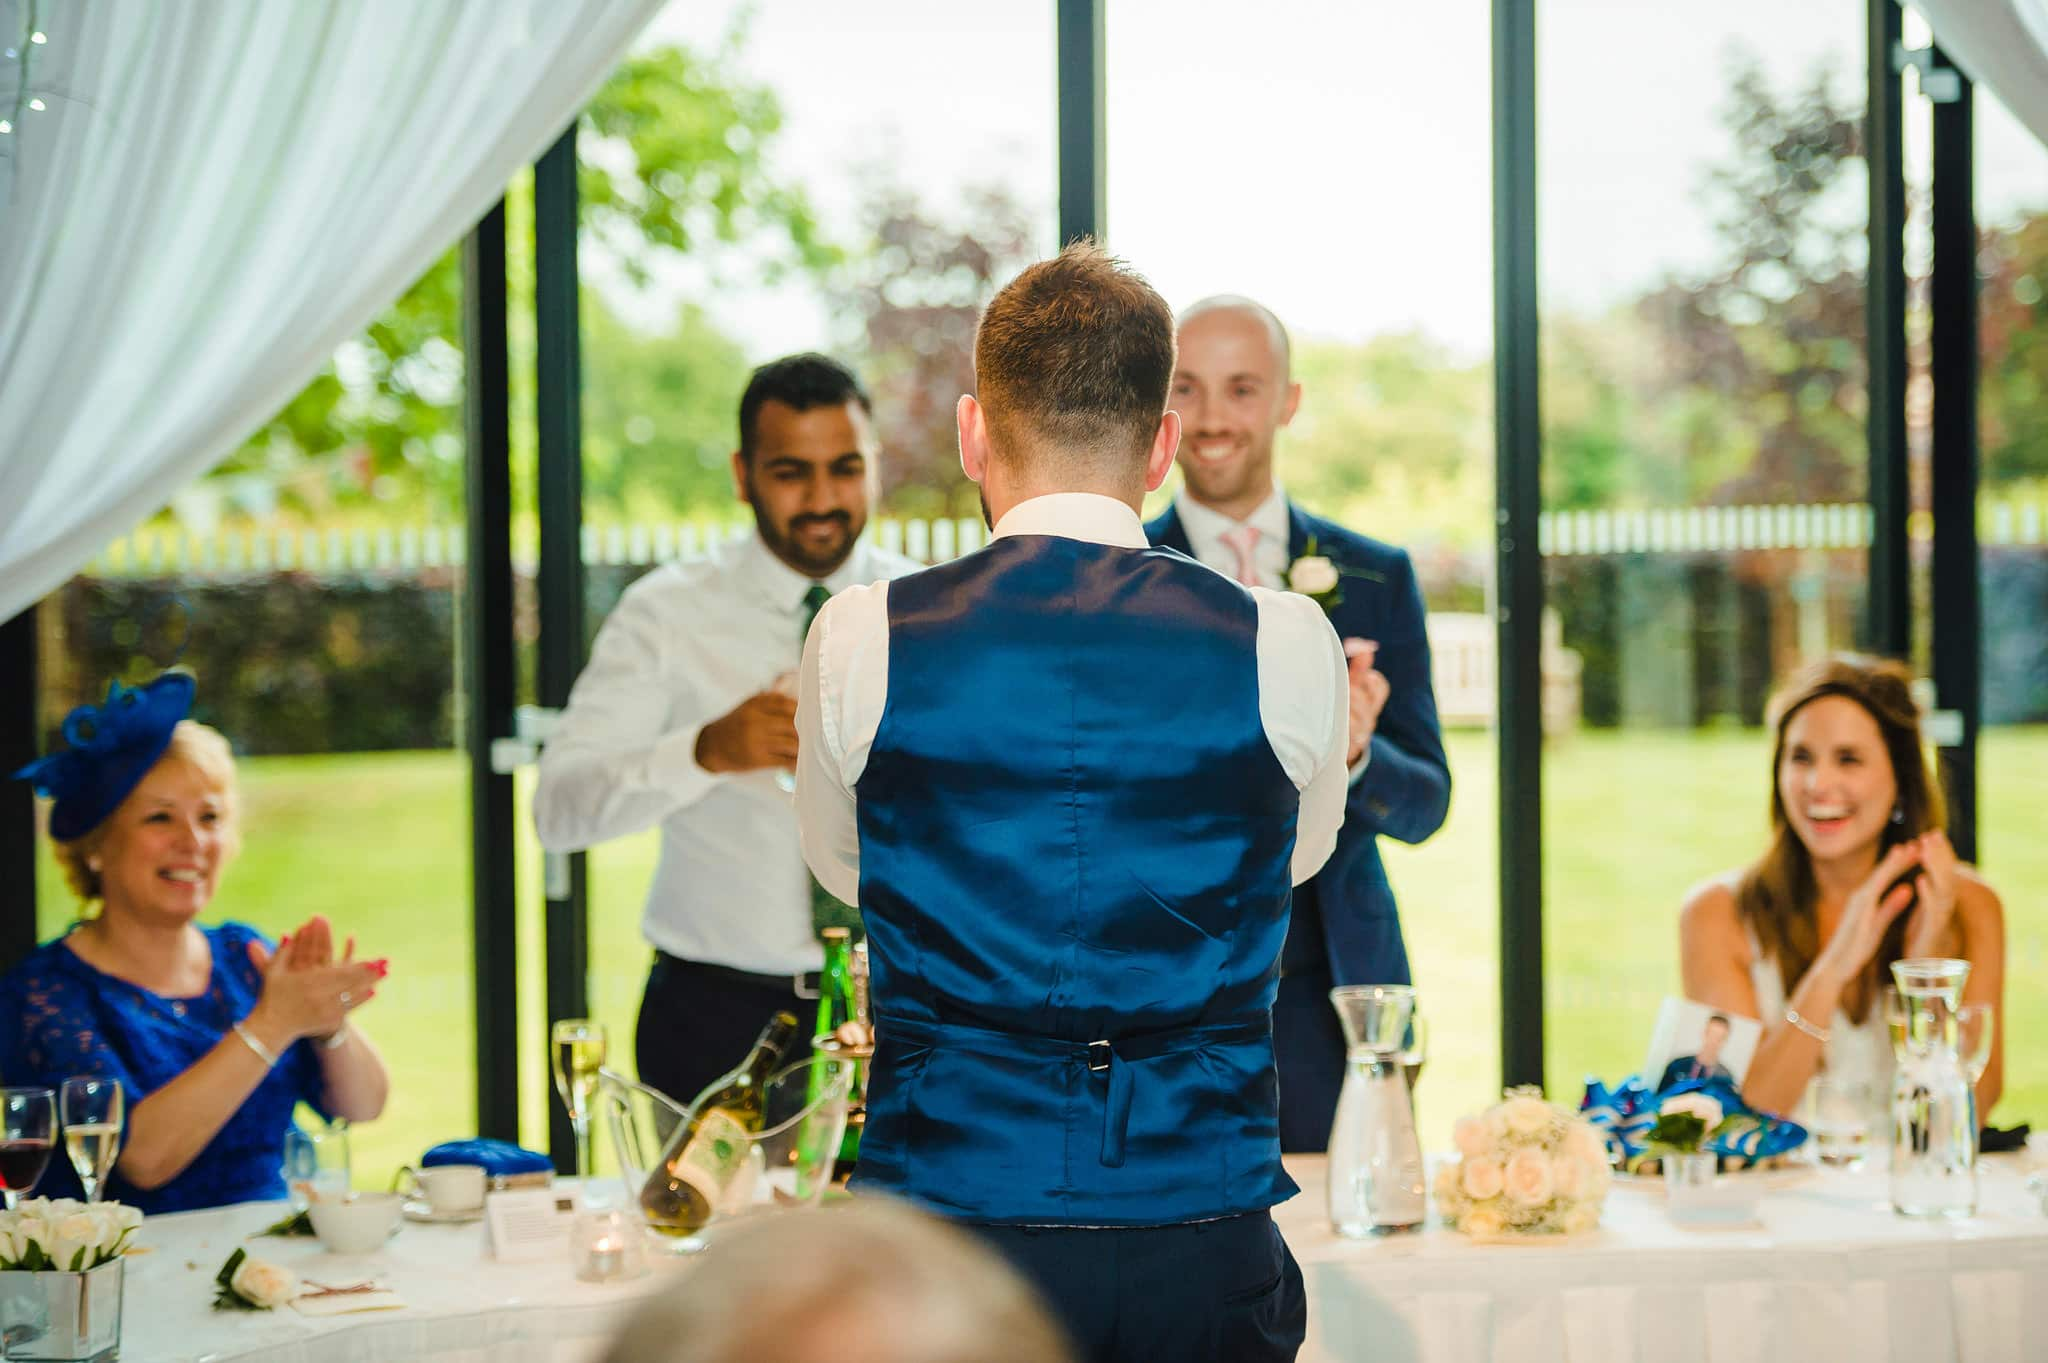 Wedding at Redhouse Barn in Stoke Prior, Worcestershire 147